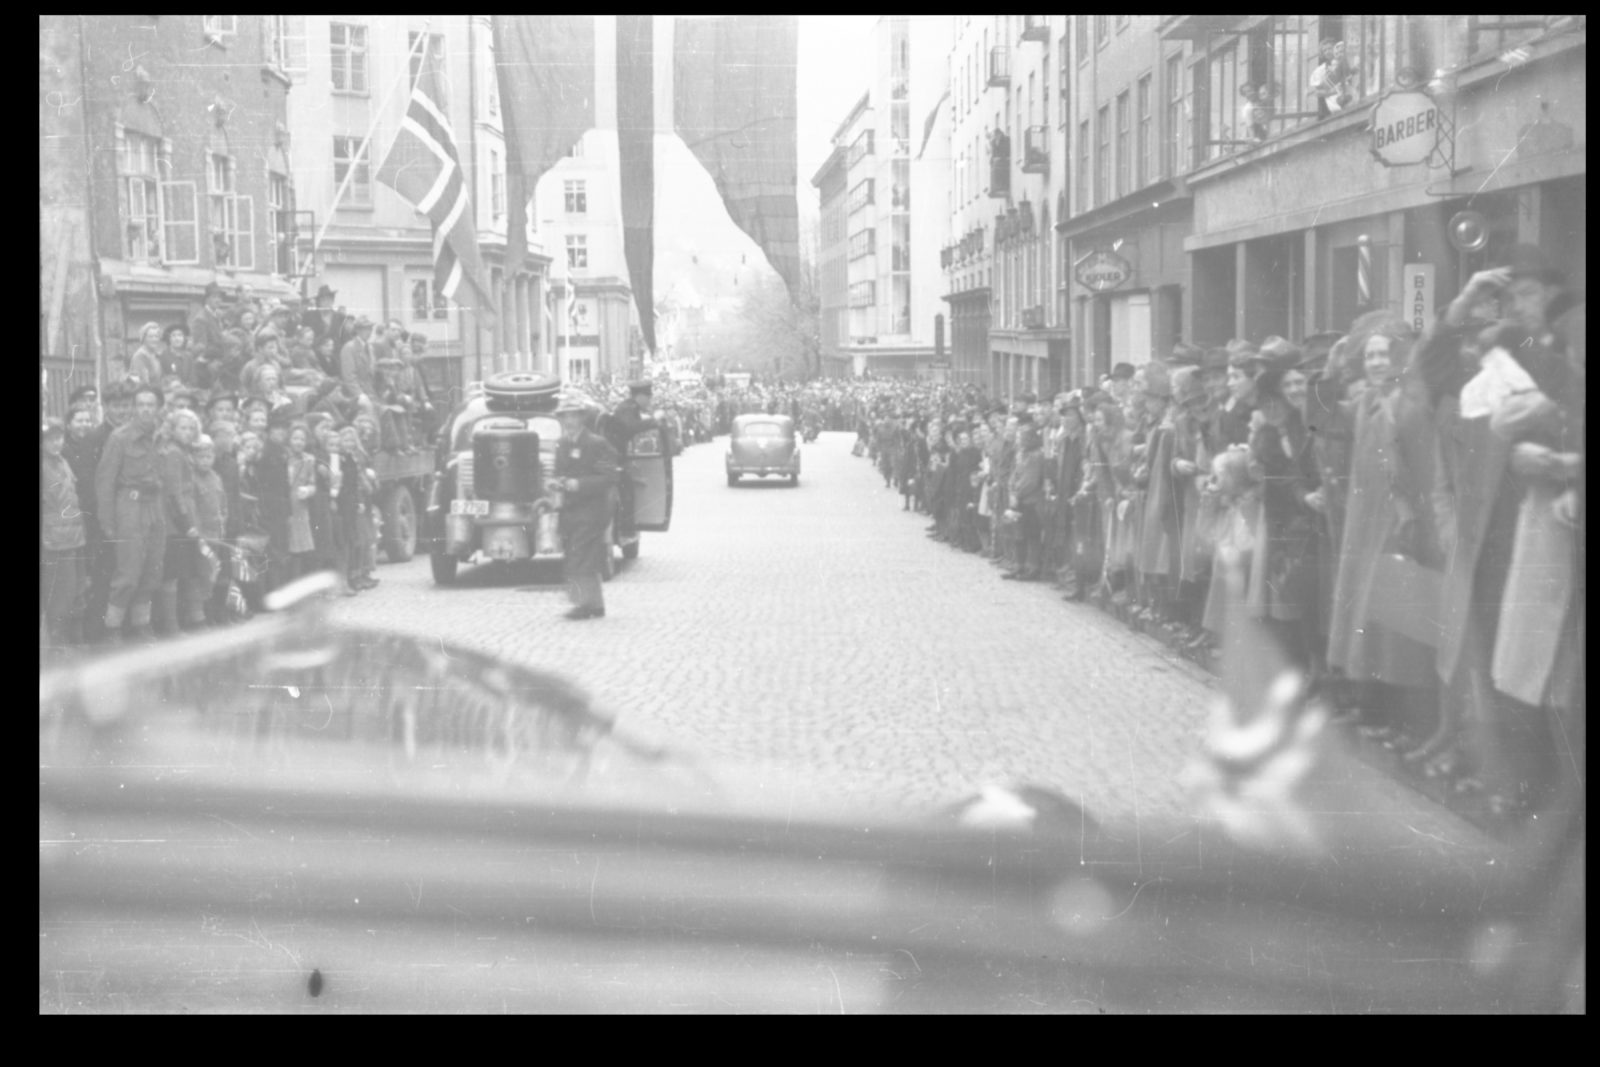 Colonel Trygve Sandvik with companions being transported into the city - 3